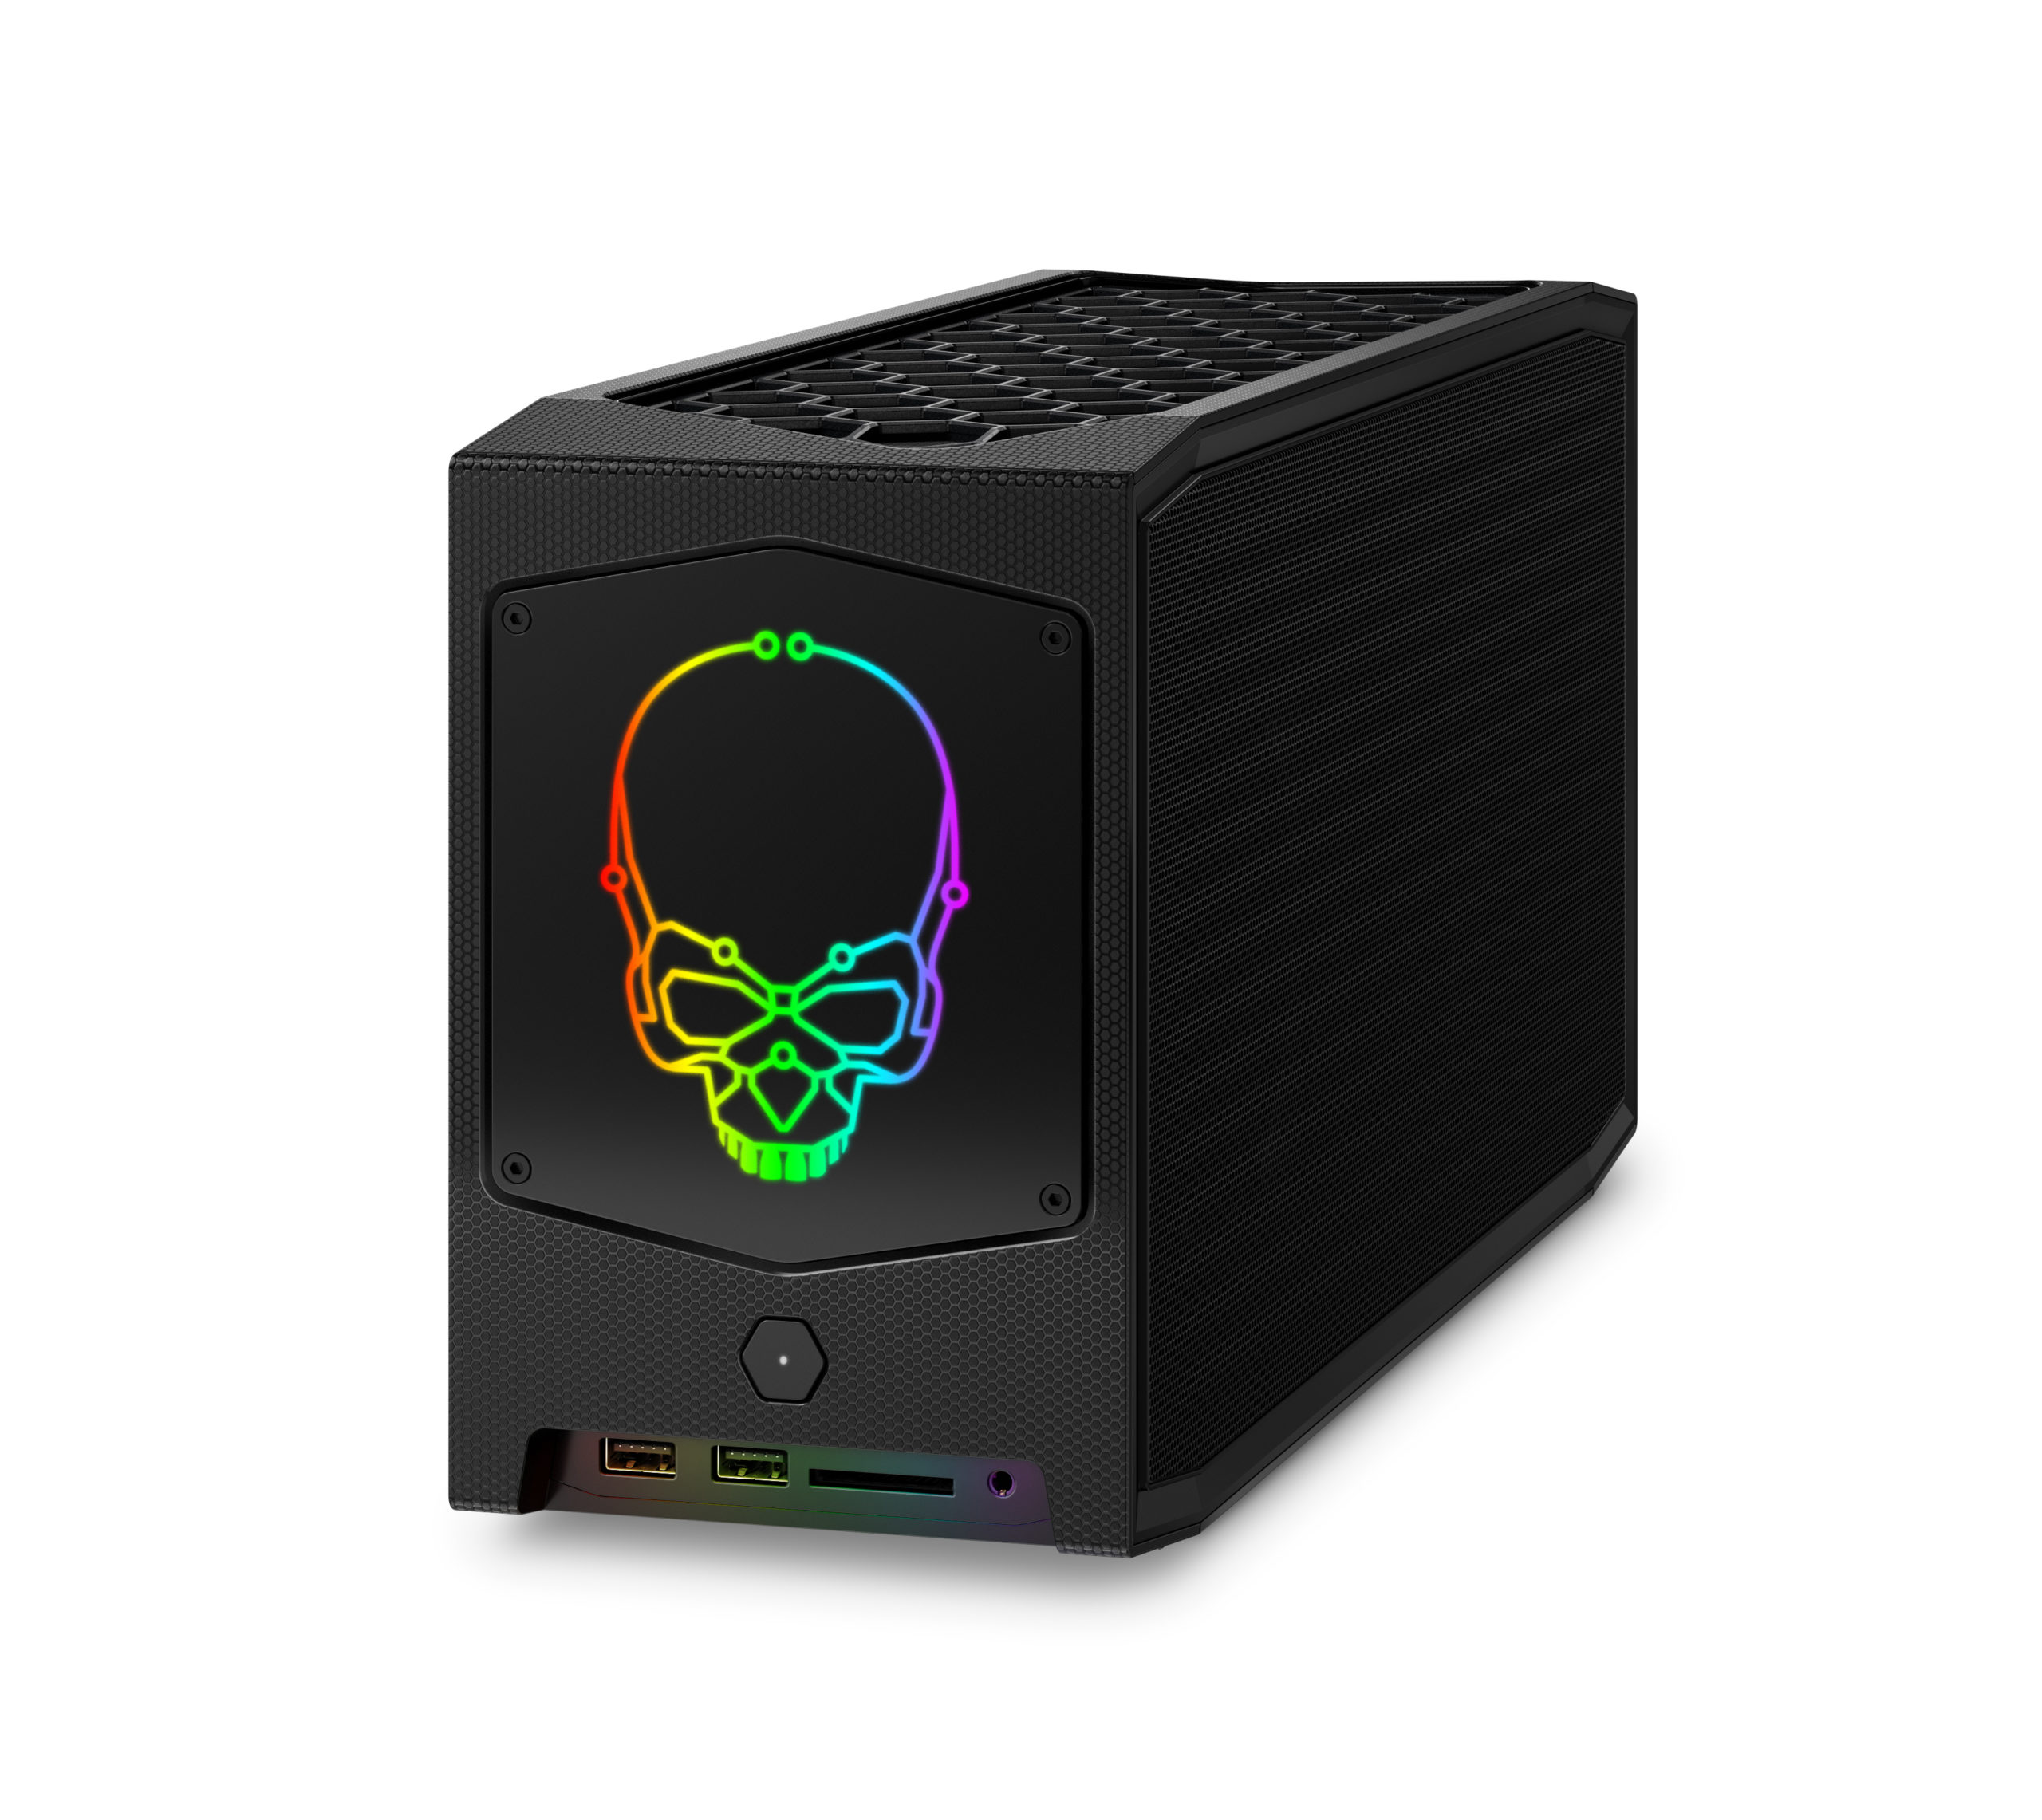 Intel® NUC 11 extreme – front angle with rgb skull